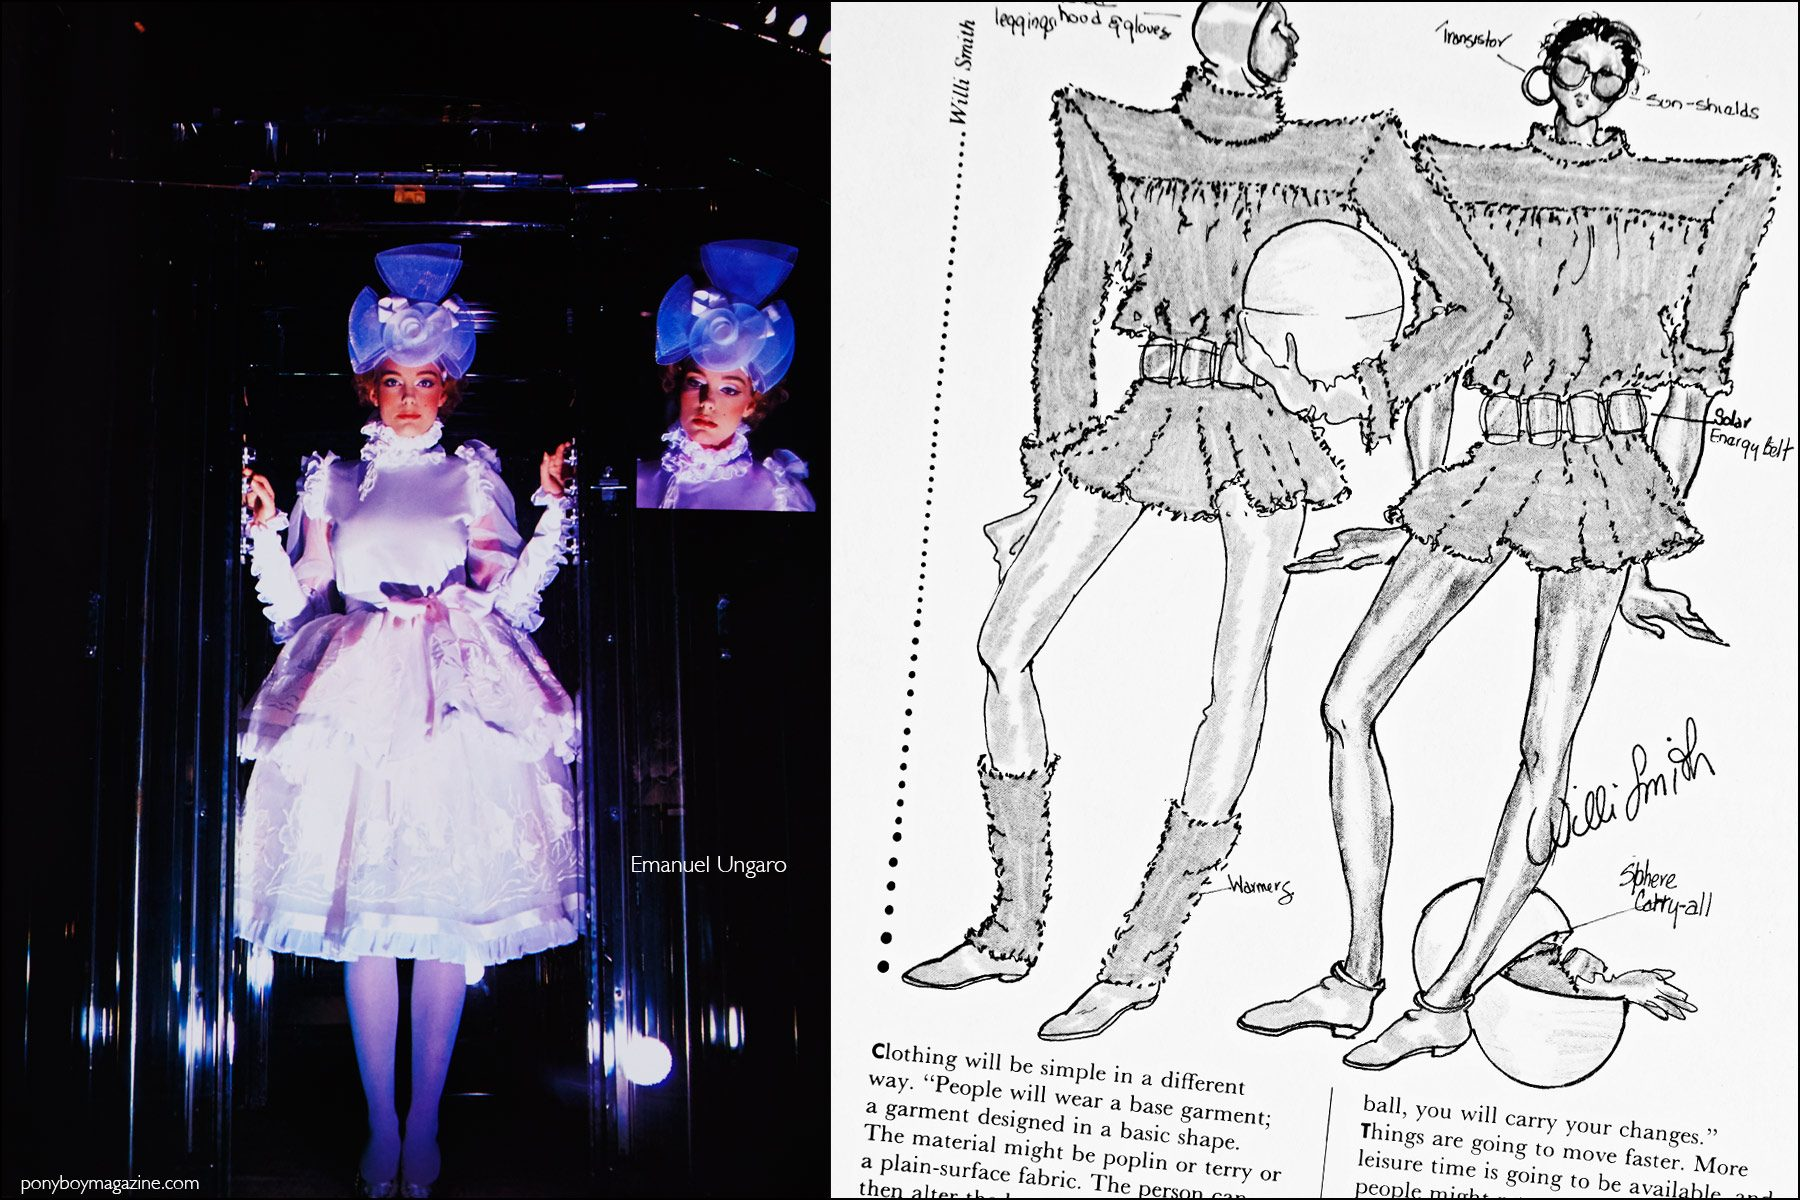 A futuristic design by Emanuel Ungaro, featured in the book Fashion: 2001 by Lucille Khornak. Ponyboy magazine NY.